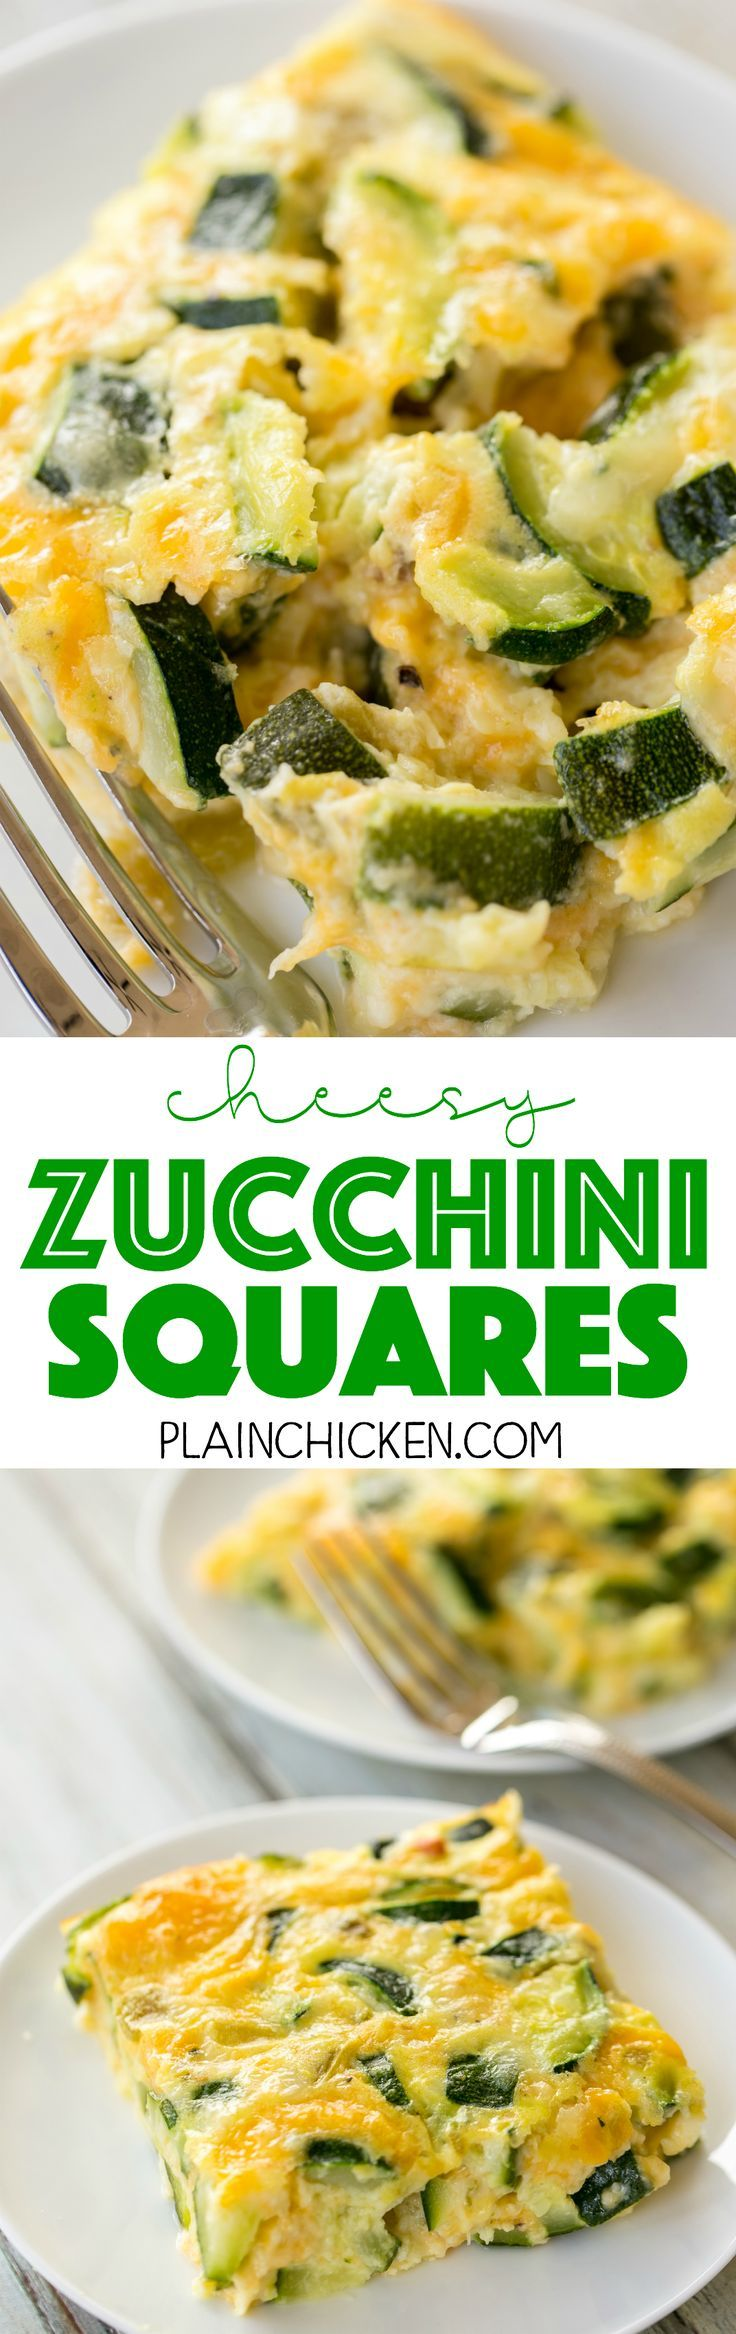 Cheesy Zucchini Squares - DELICIOUS side dish or breakfast casserole! Perfect way to use up all that yummy summer squash! Zucchini, flour, baking powder, milk, eggs, green chiles and Monterey Jack cheese. We served this as a side dish with our grilled mea